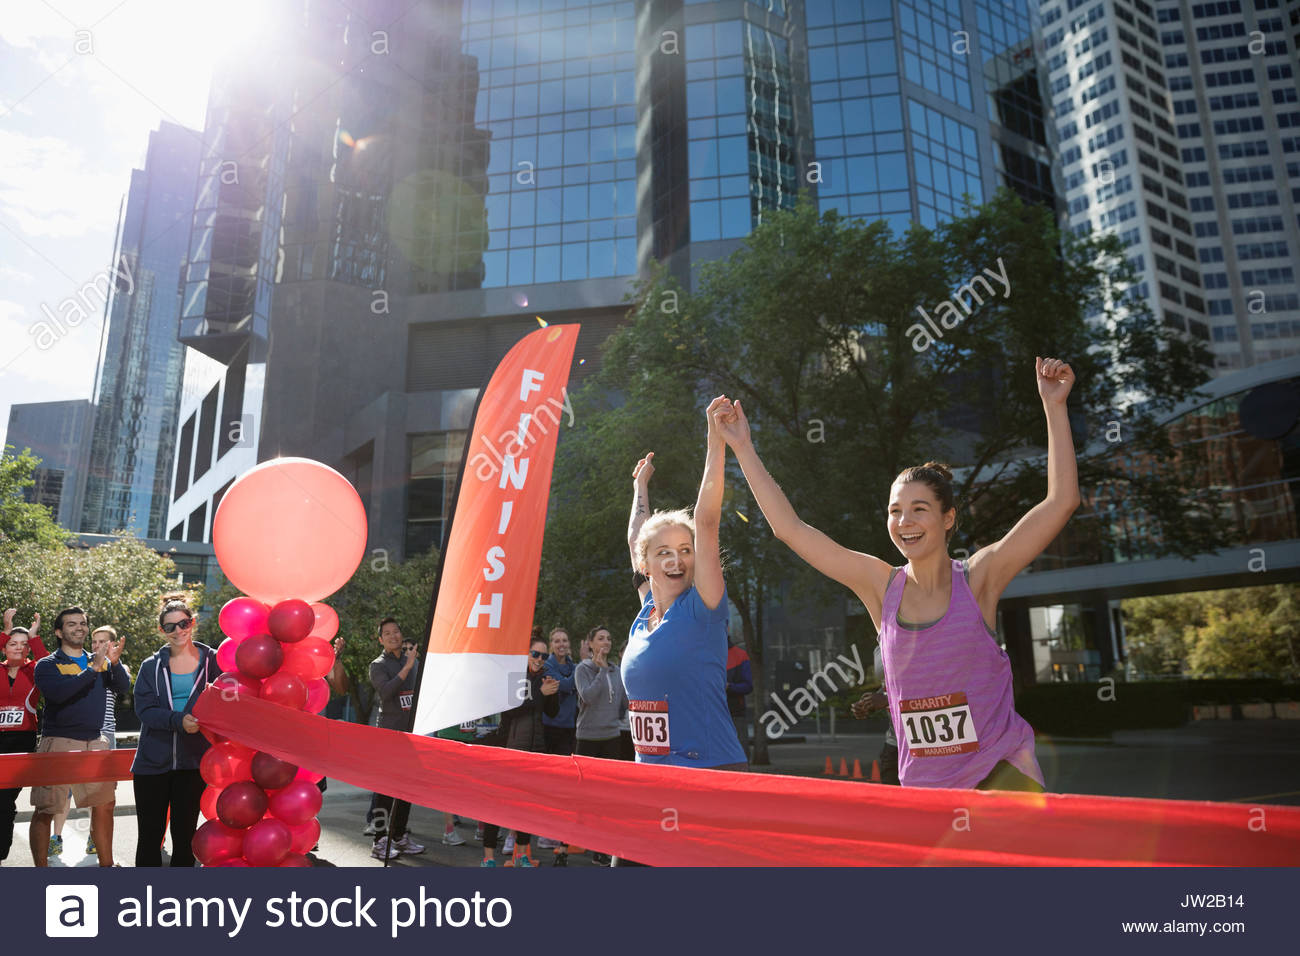 Exuberant female marathon runners holding hands crossing finish line with arms raised - Stock Image